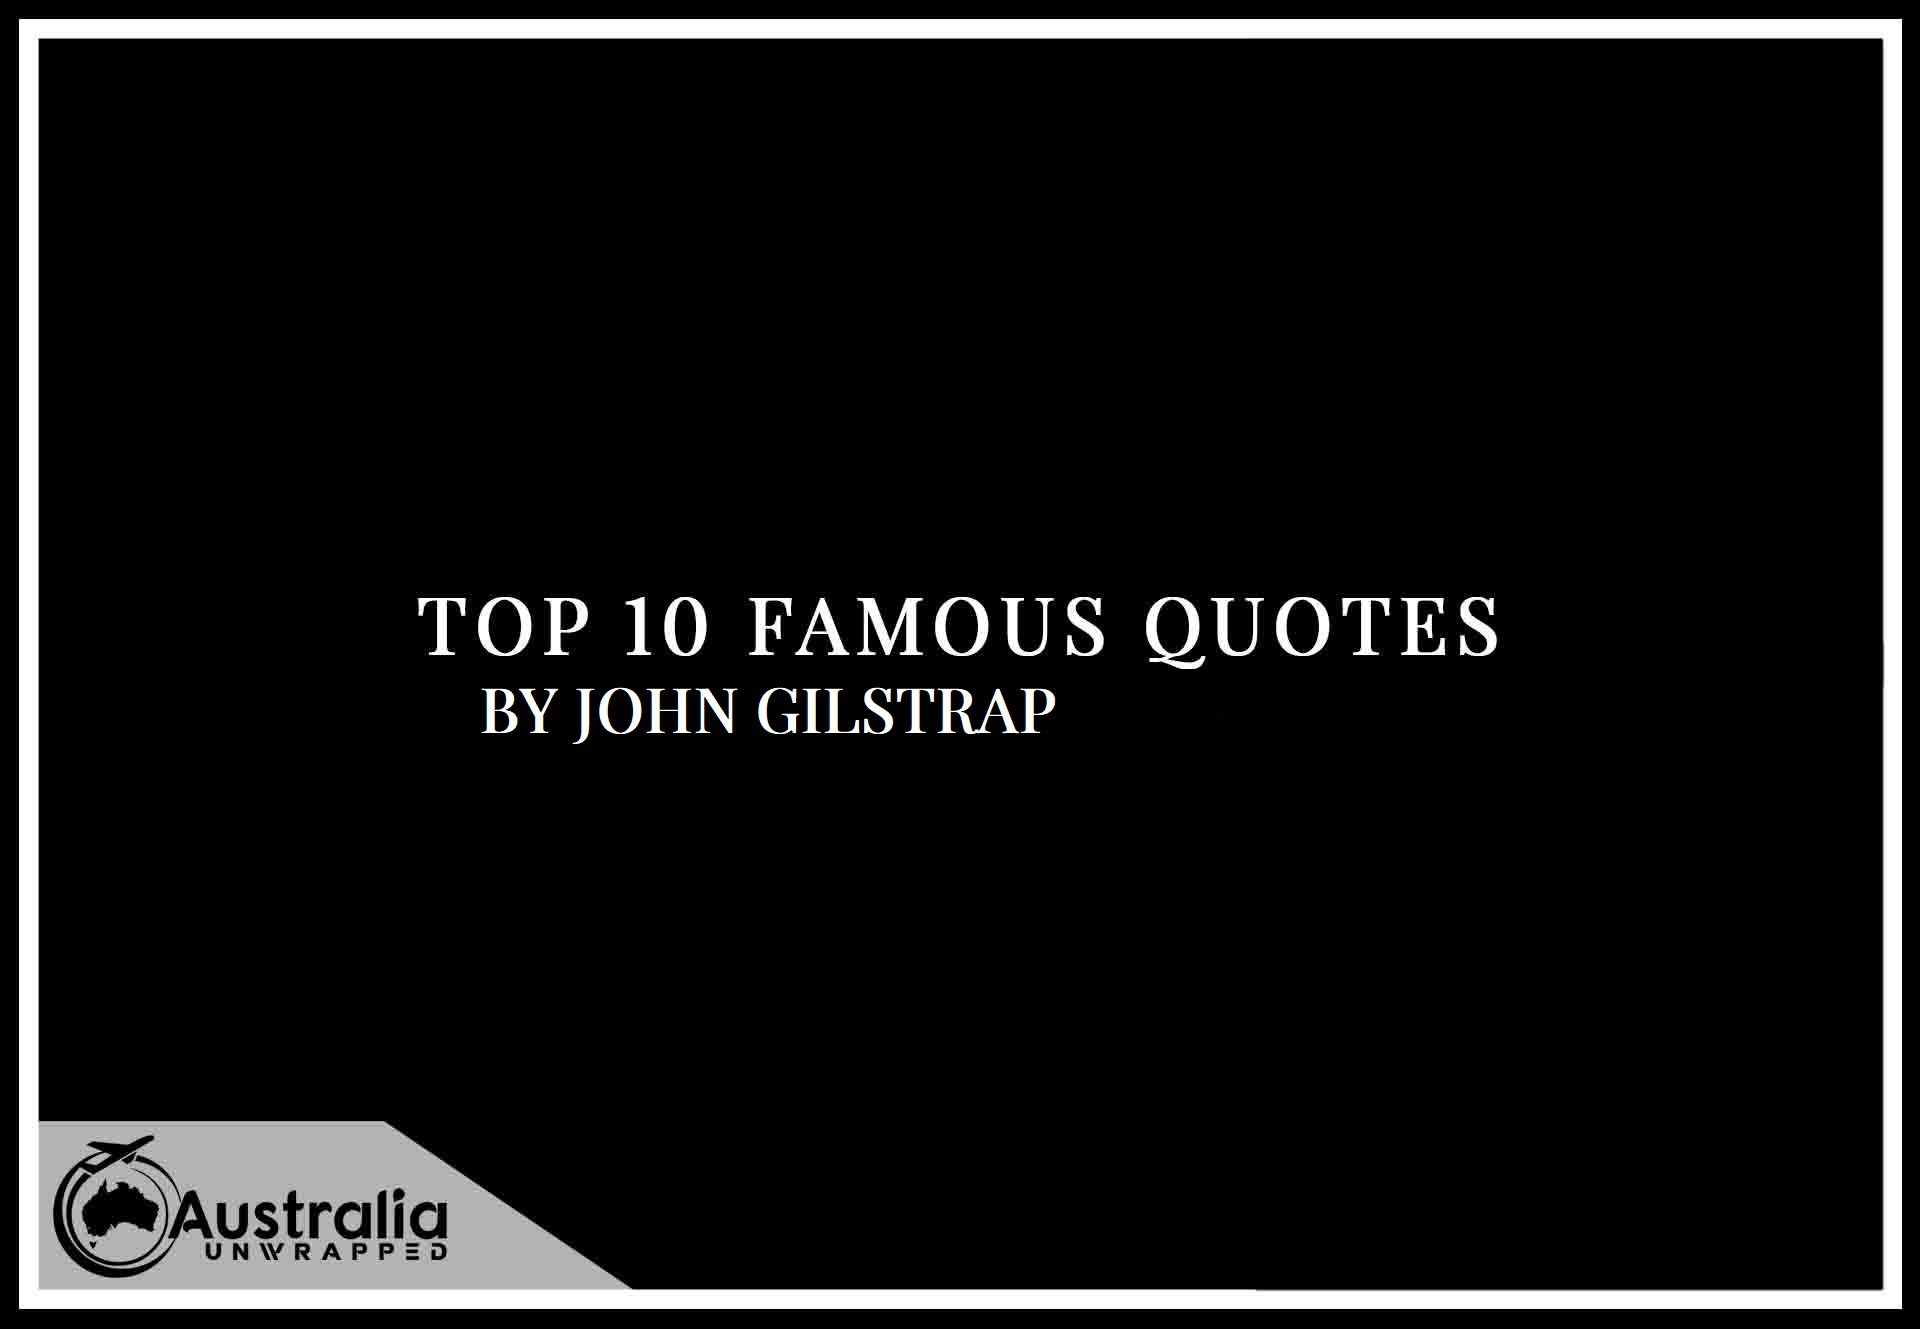 Top 10 Famous Quotes by Author John Gilstrap